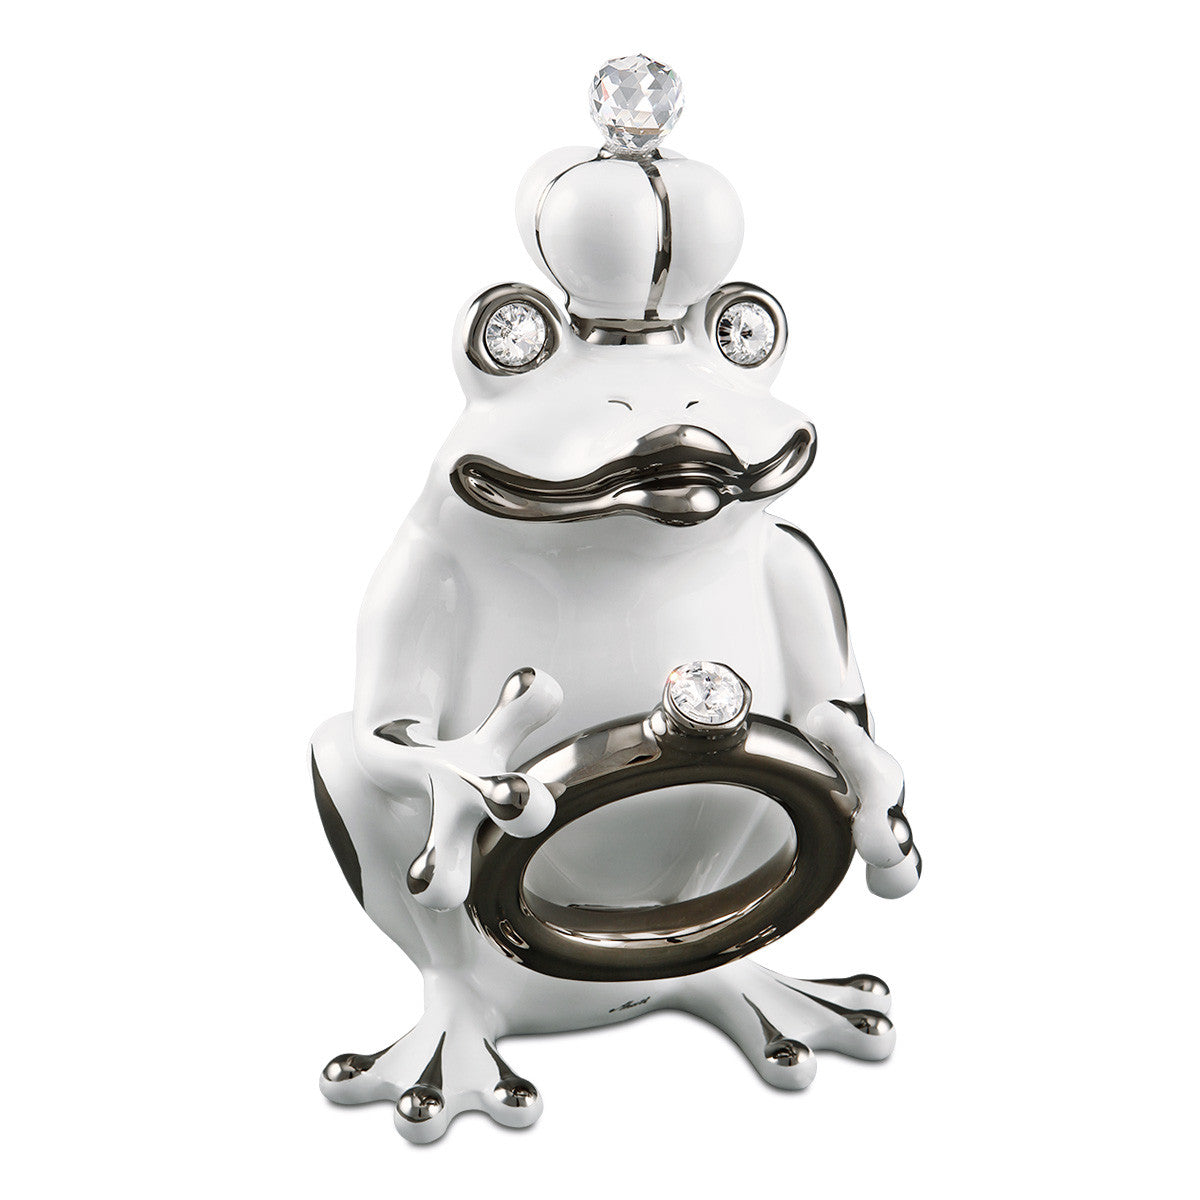 ceramic porcelain white frog finished in platinum with Swarovski handmade in Italy